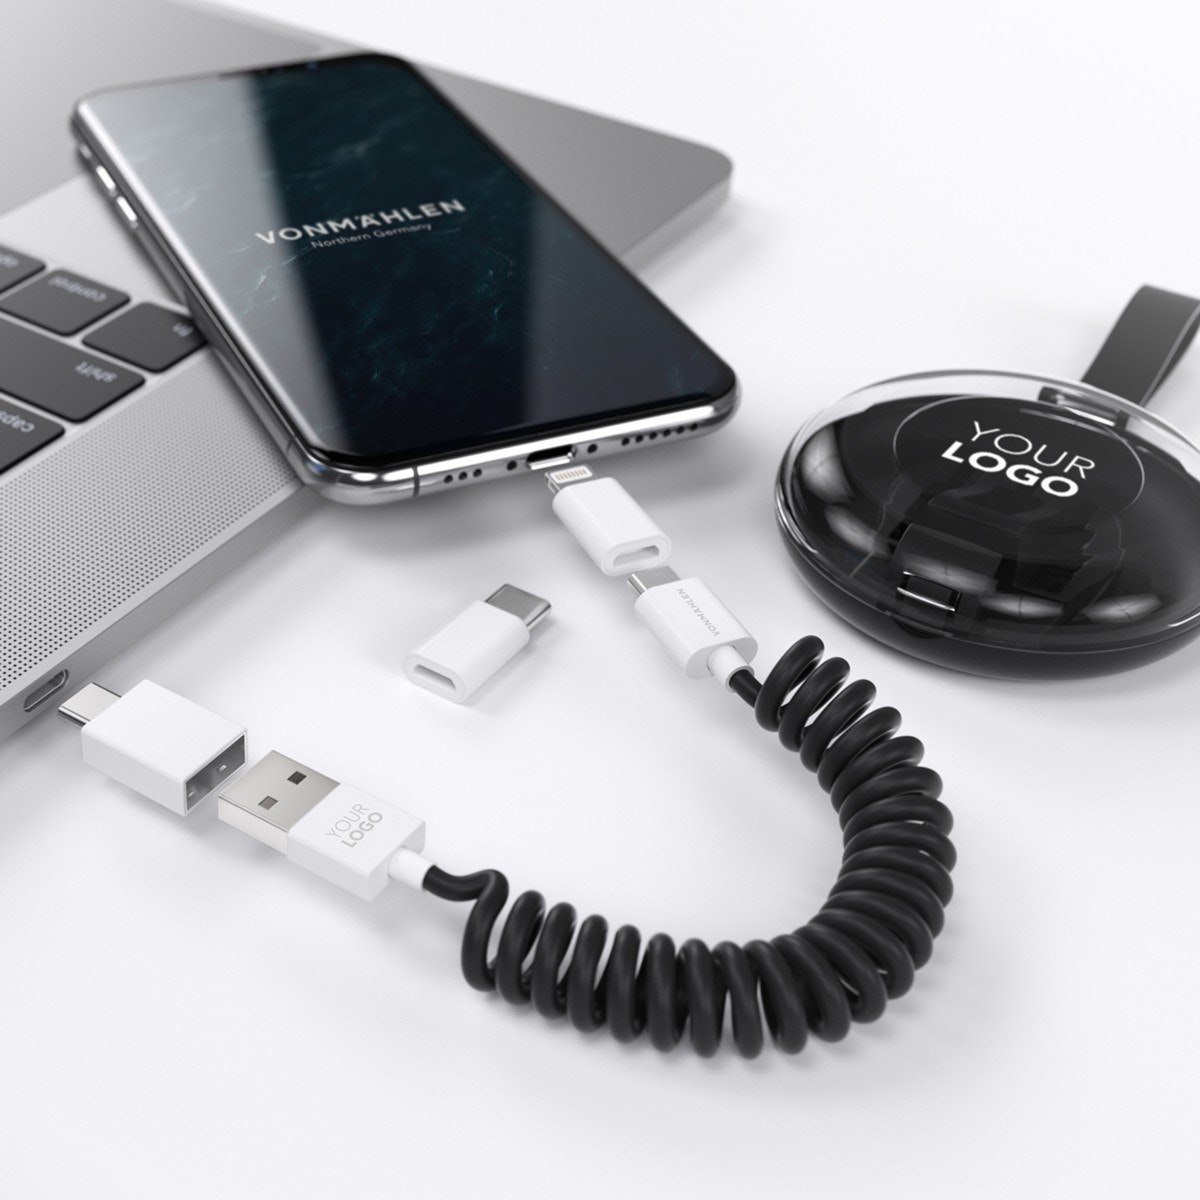 allroundo® - The All-in-One Charging Cable